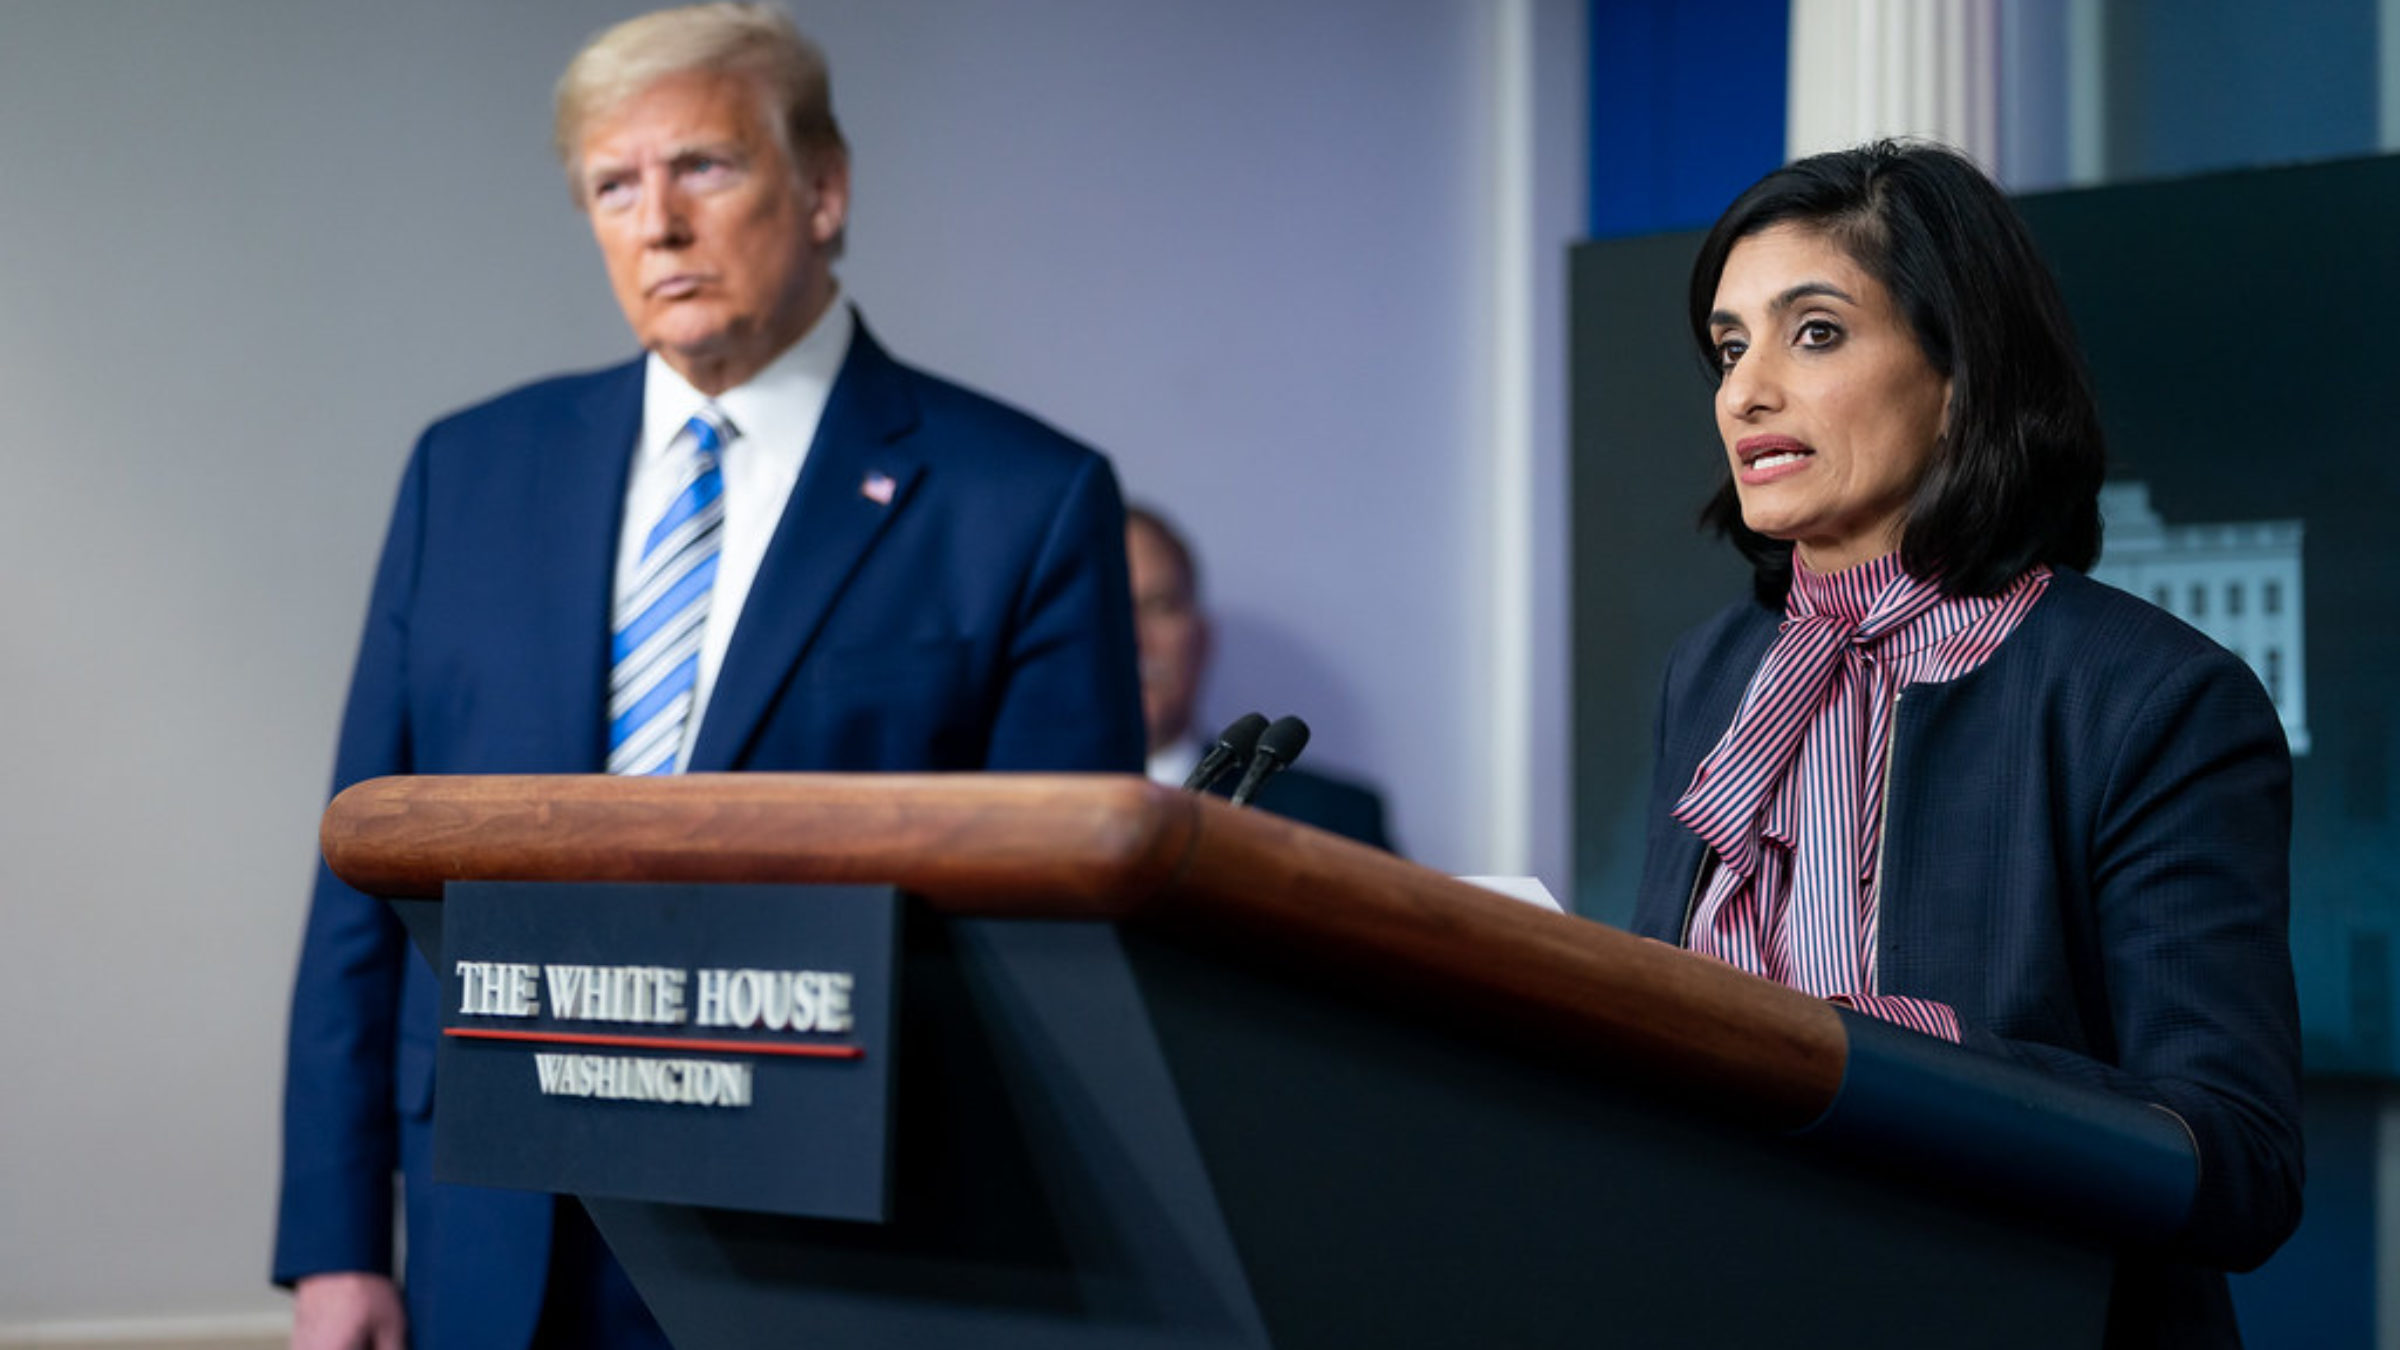 CMS Administrator Veema Serma speaks at a podium at a press briefing while Donald Trump looks on